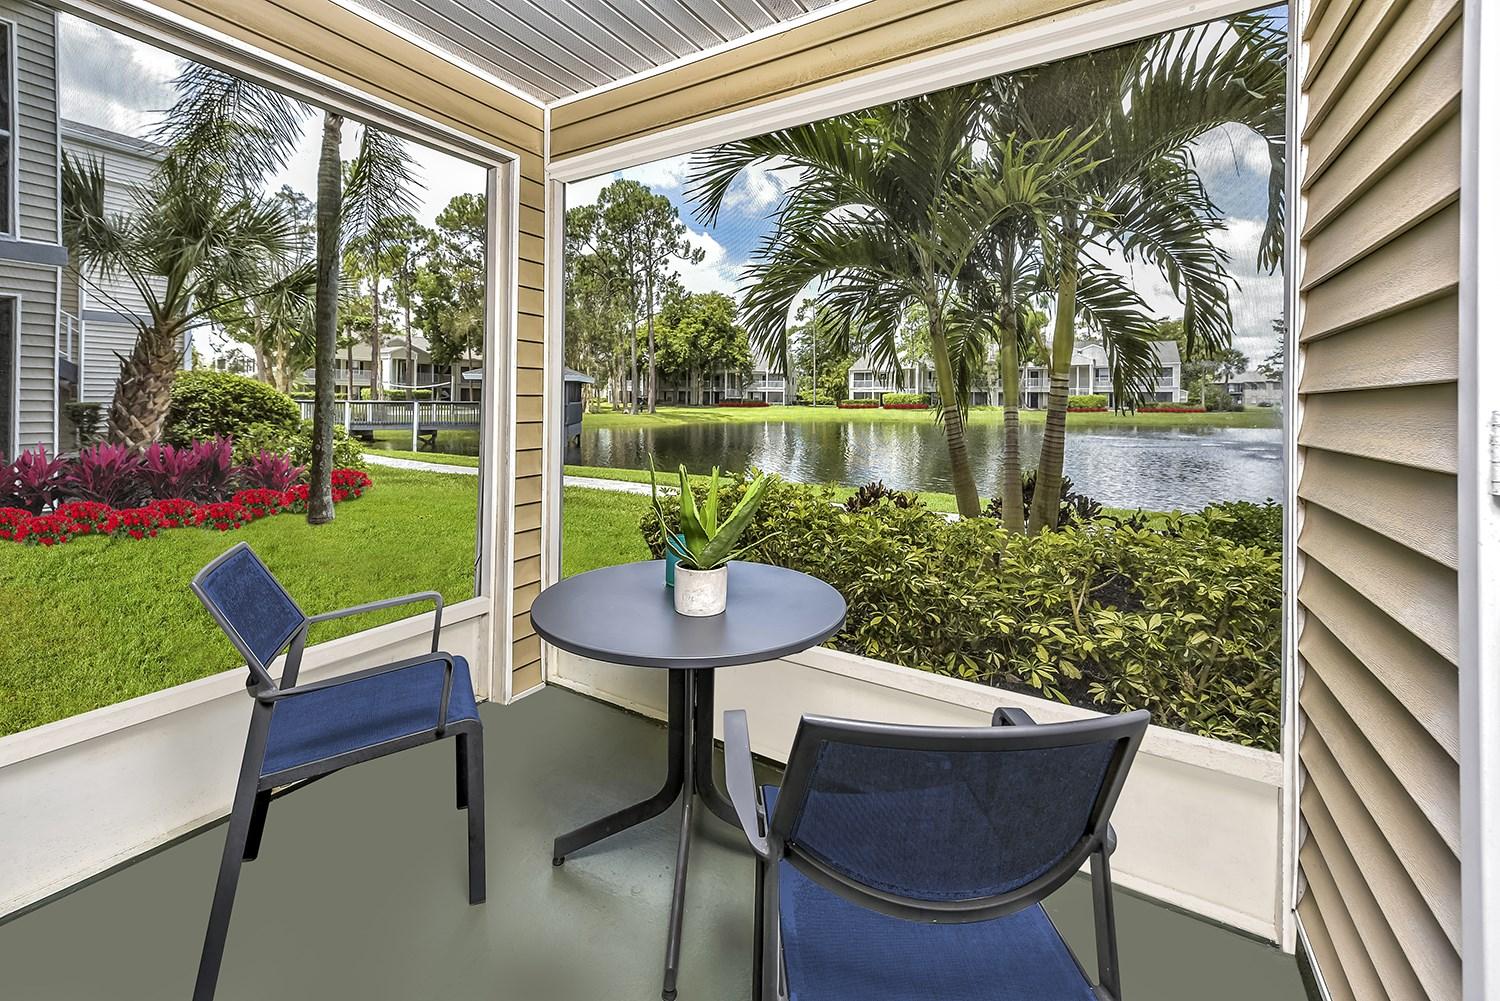 Screened Patio at Brantley Pines Apartments in Ft. Myers, FL